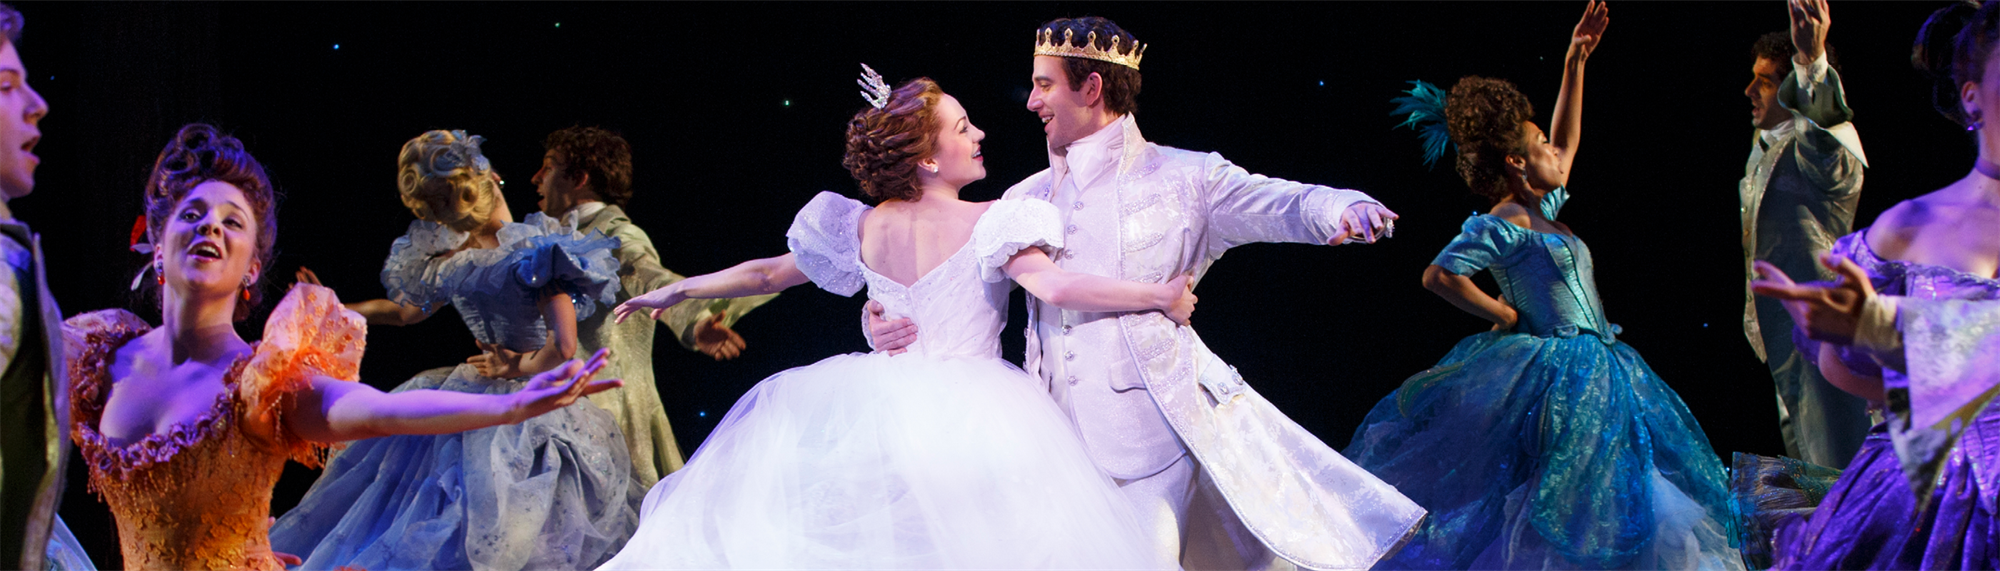 The Rodgers & Hammerstein Cinderella Collection Featured Promo Banner Image